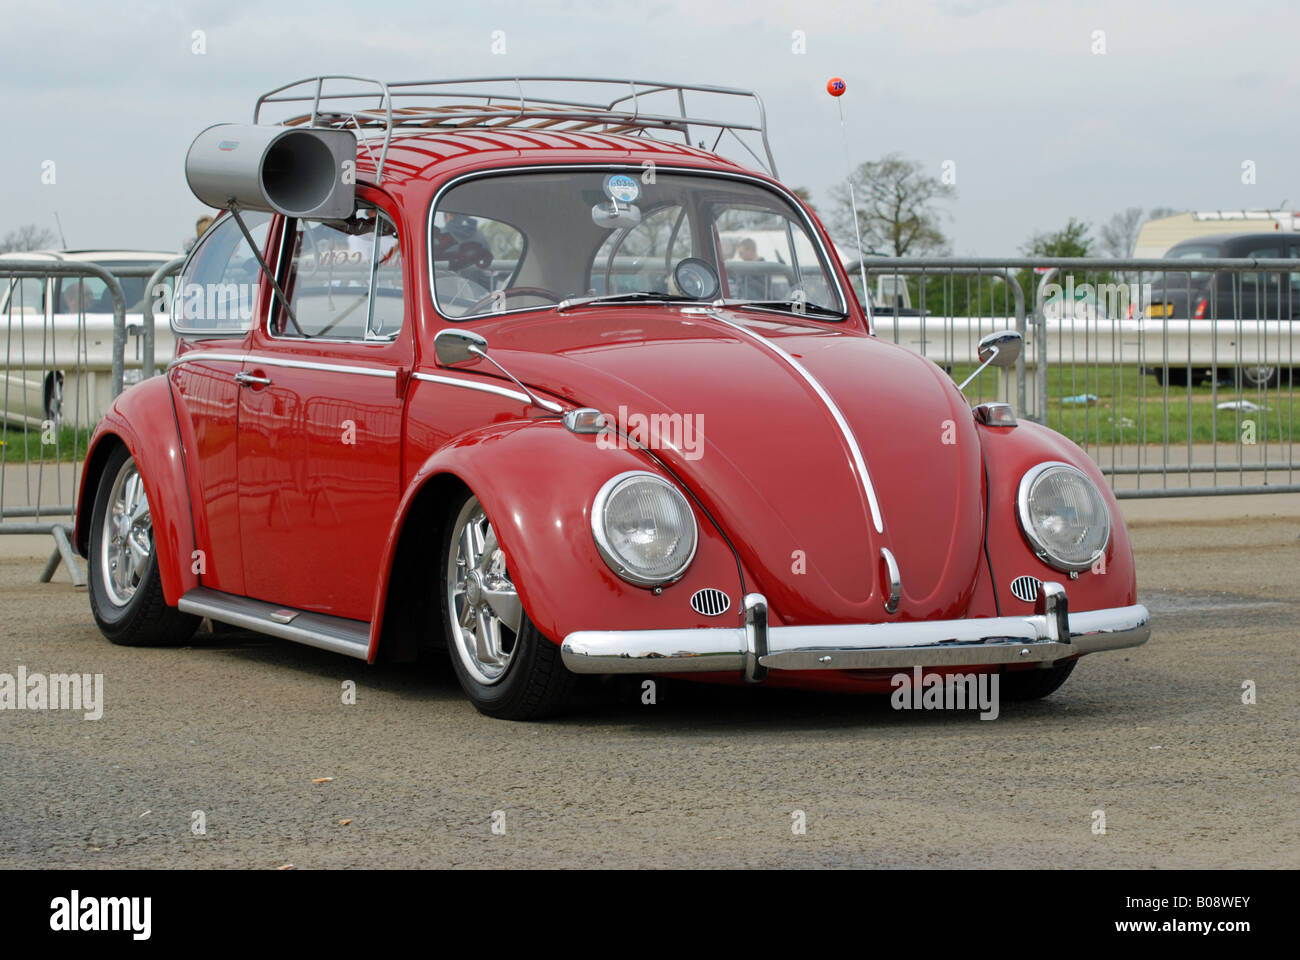 "vw beetle fitted with an air conditioning unit known as a ""swamp"